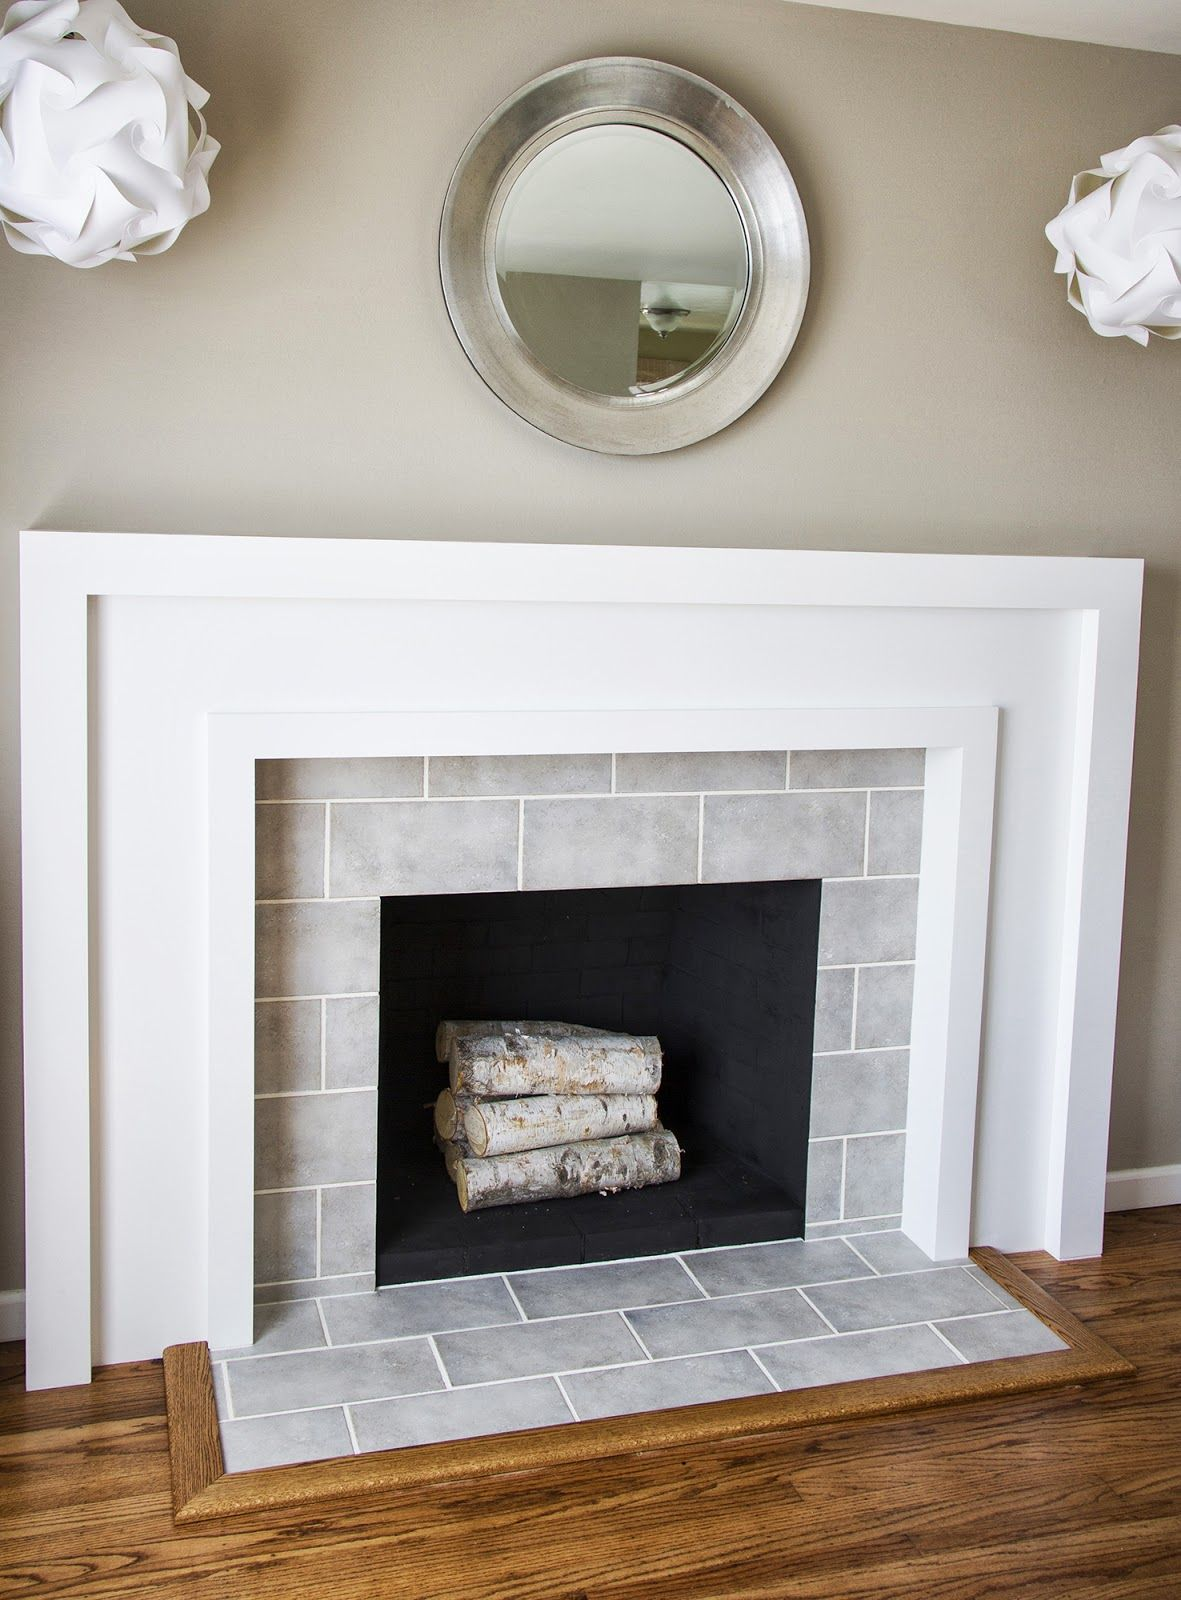 Swingncocoa Fireplace Makeover Part Deliciously Done Remodel Home